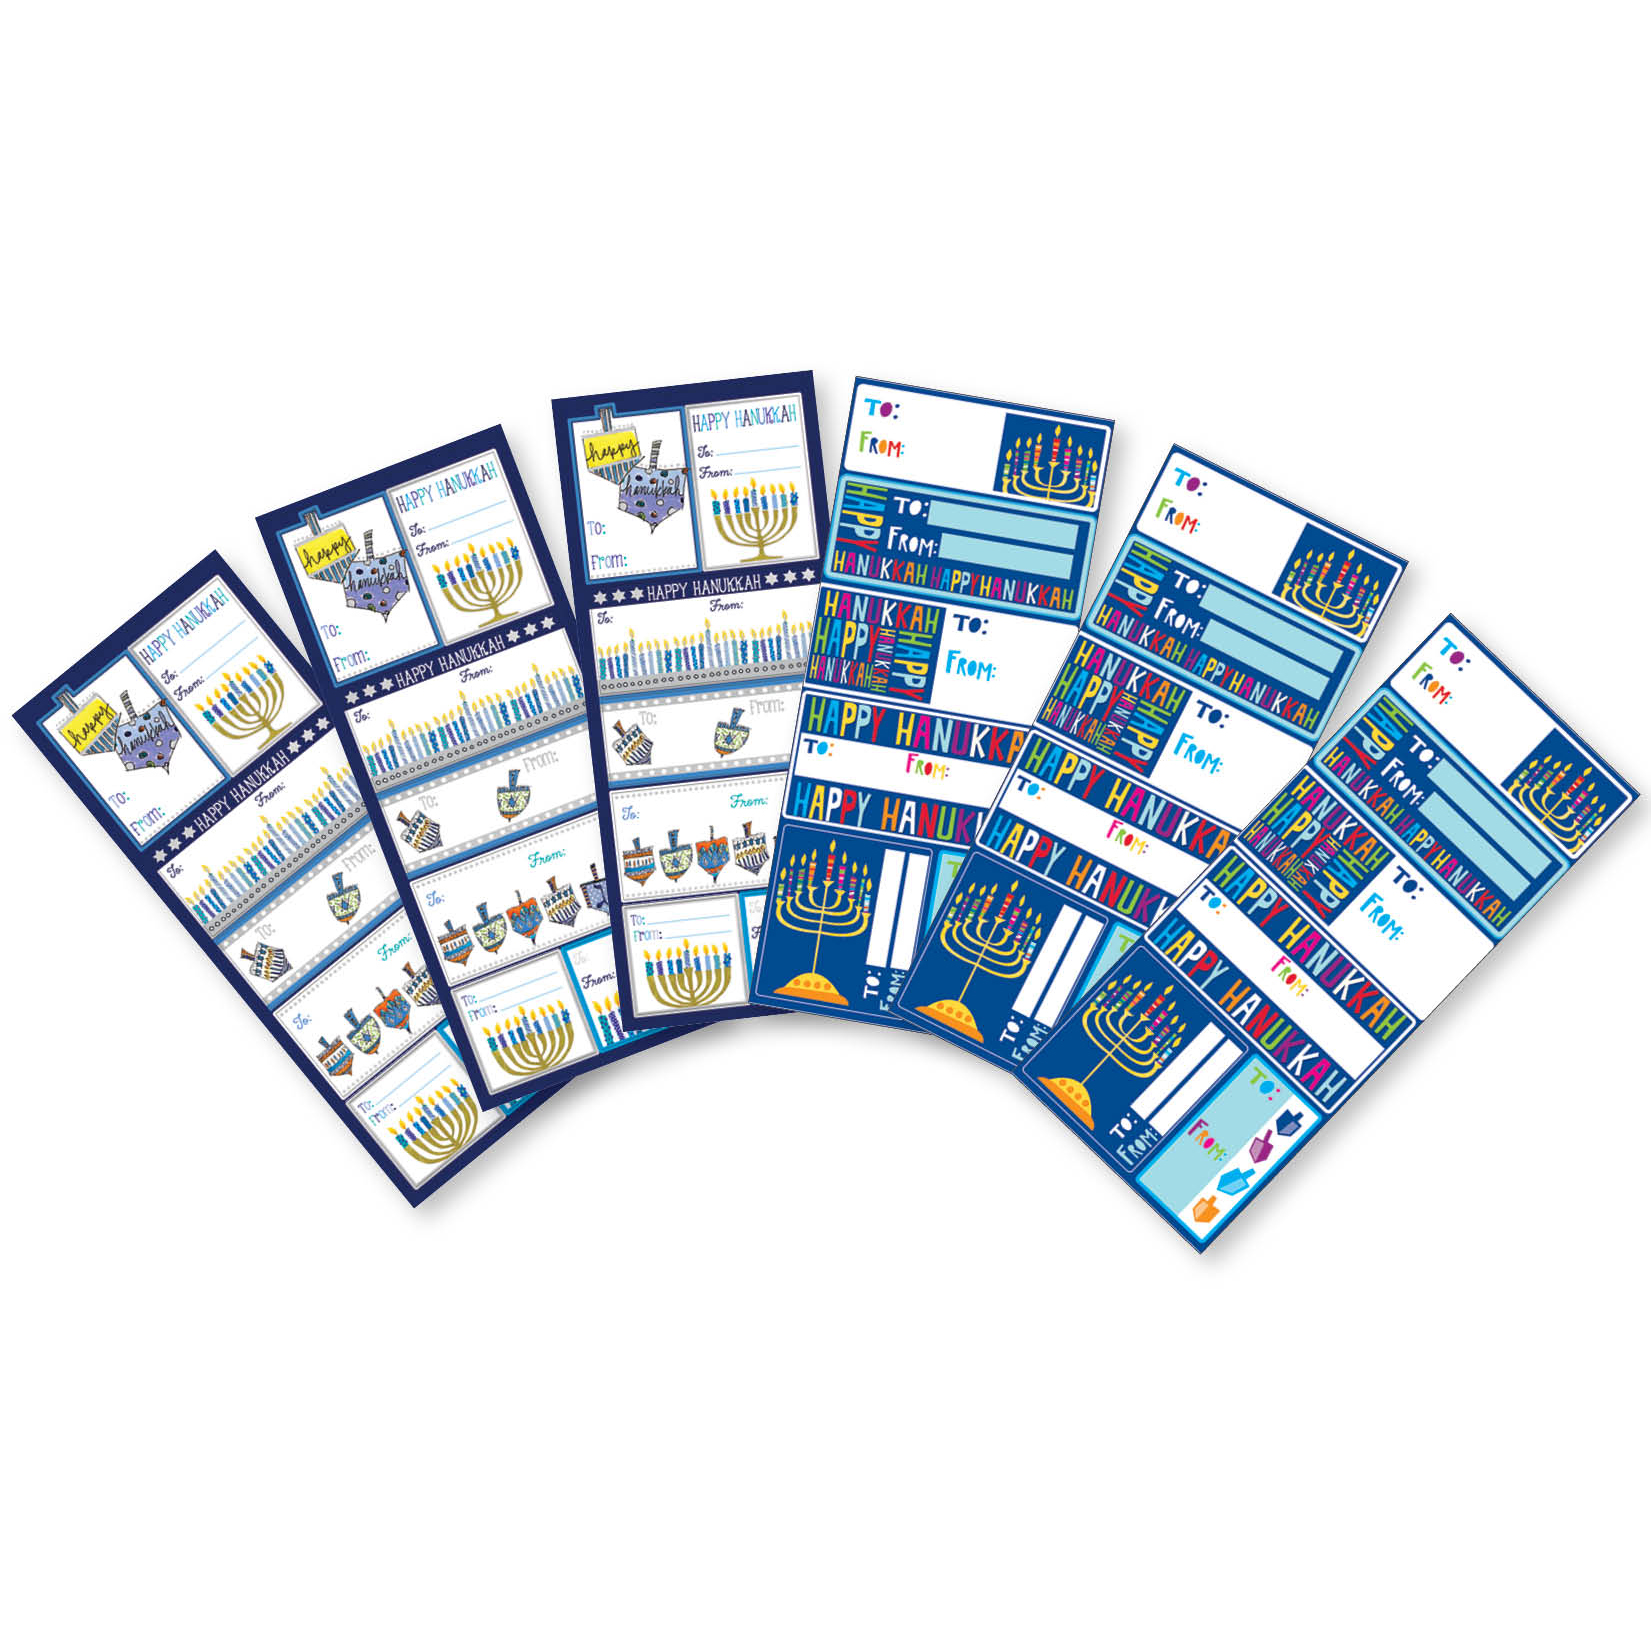 Jillson & Roberts Gift Label Assortment, Hanukkah Designs (12 Sheets)